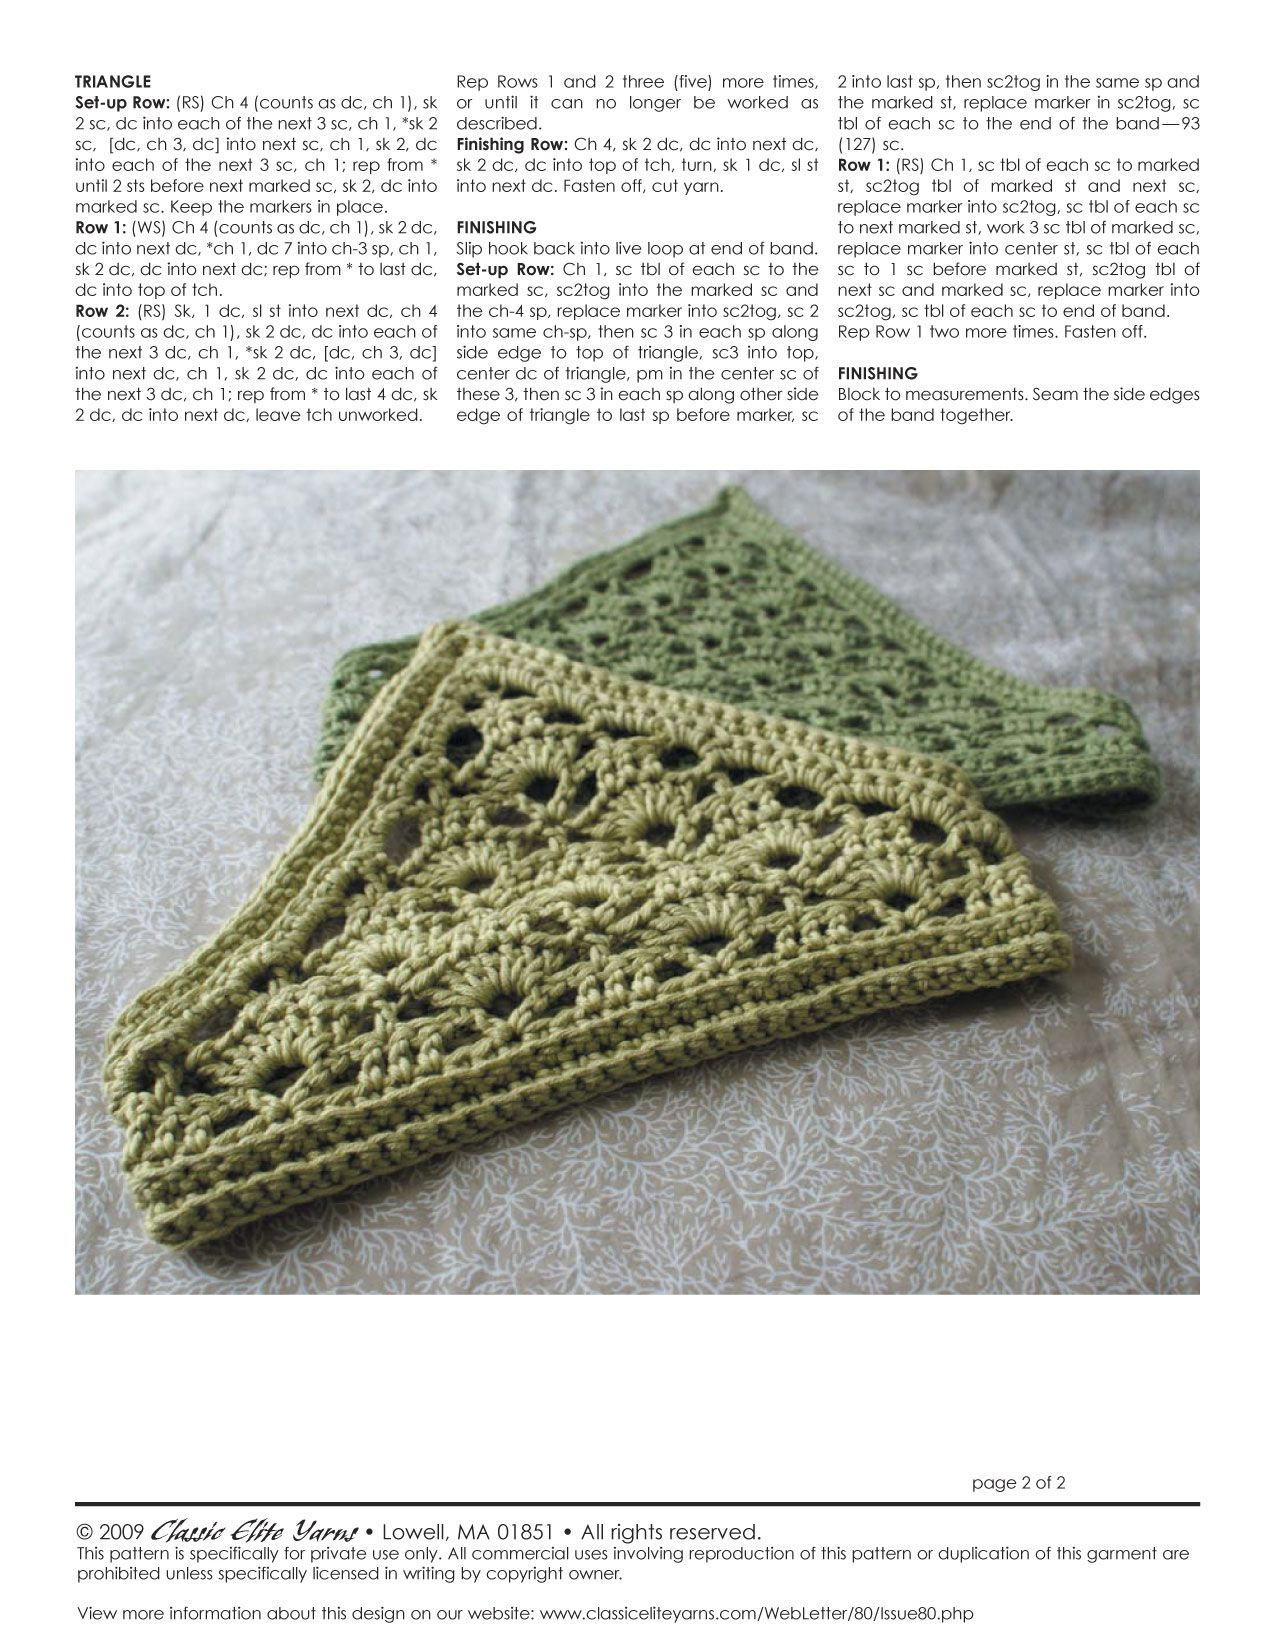 doll kerchief crochet | FREE CROCHET KERCHIEF PATTERN | Crochet and ...